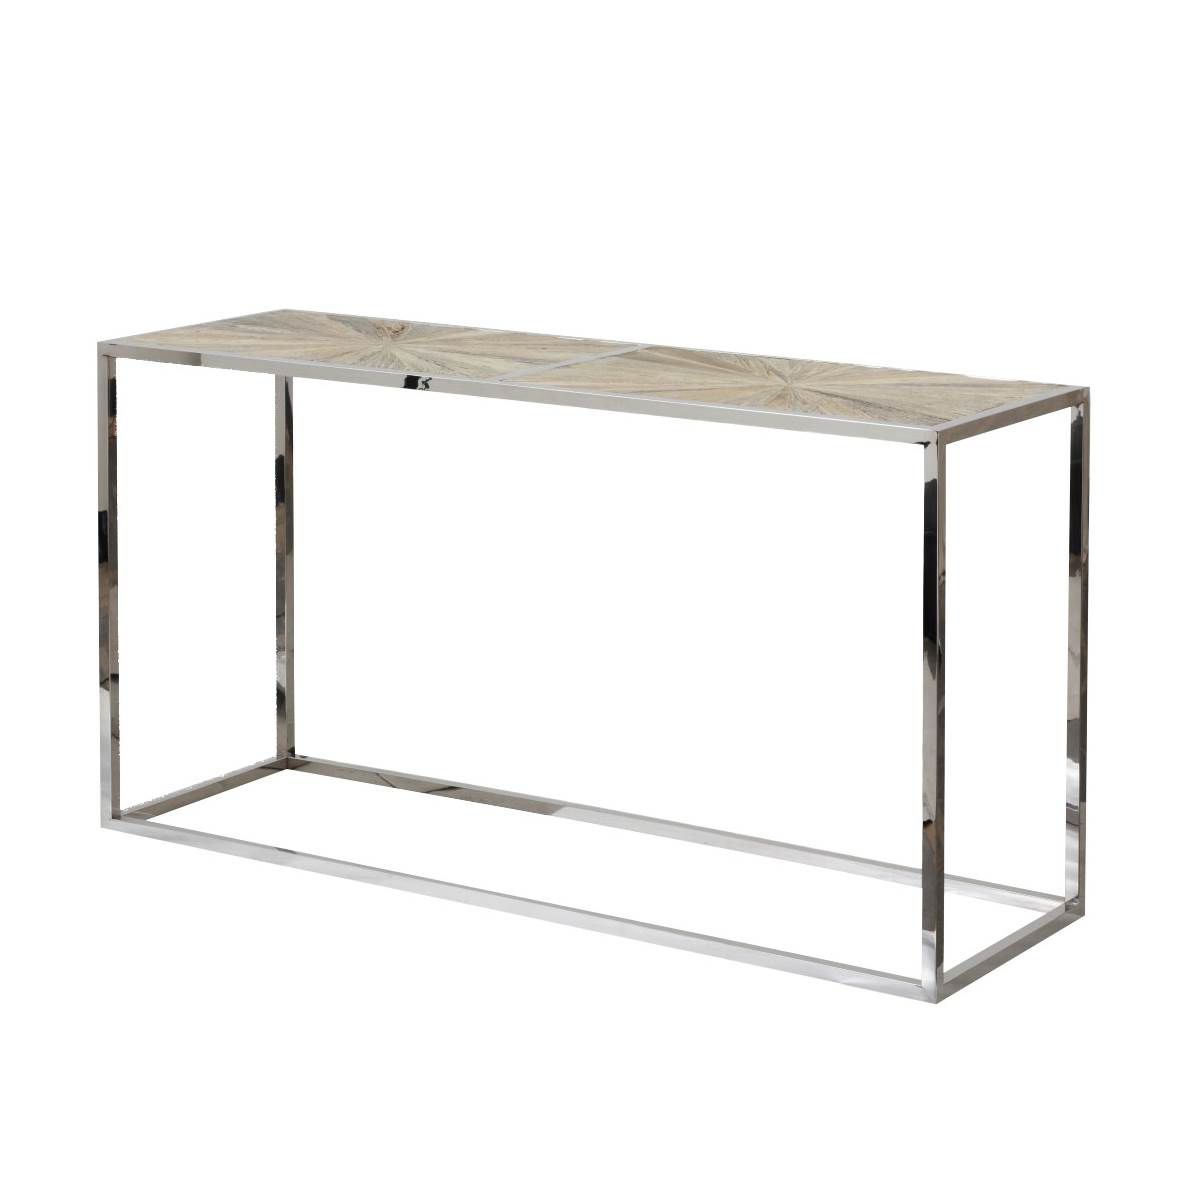 Parquet Console Table | Marshall | Pinterest For Parsons Grey Solid Surface Top & Brass Base 48x16 Console Tables (View 9 of 19)